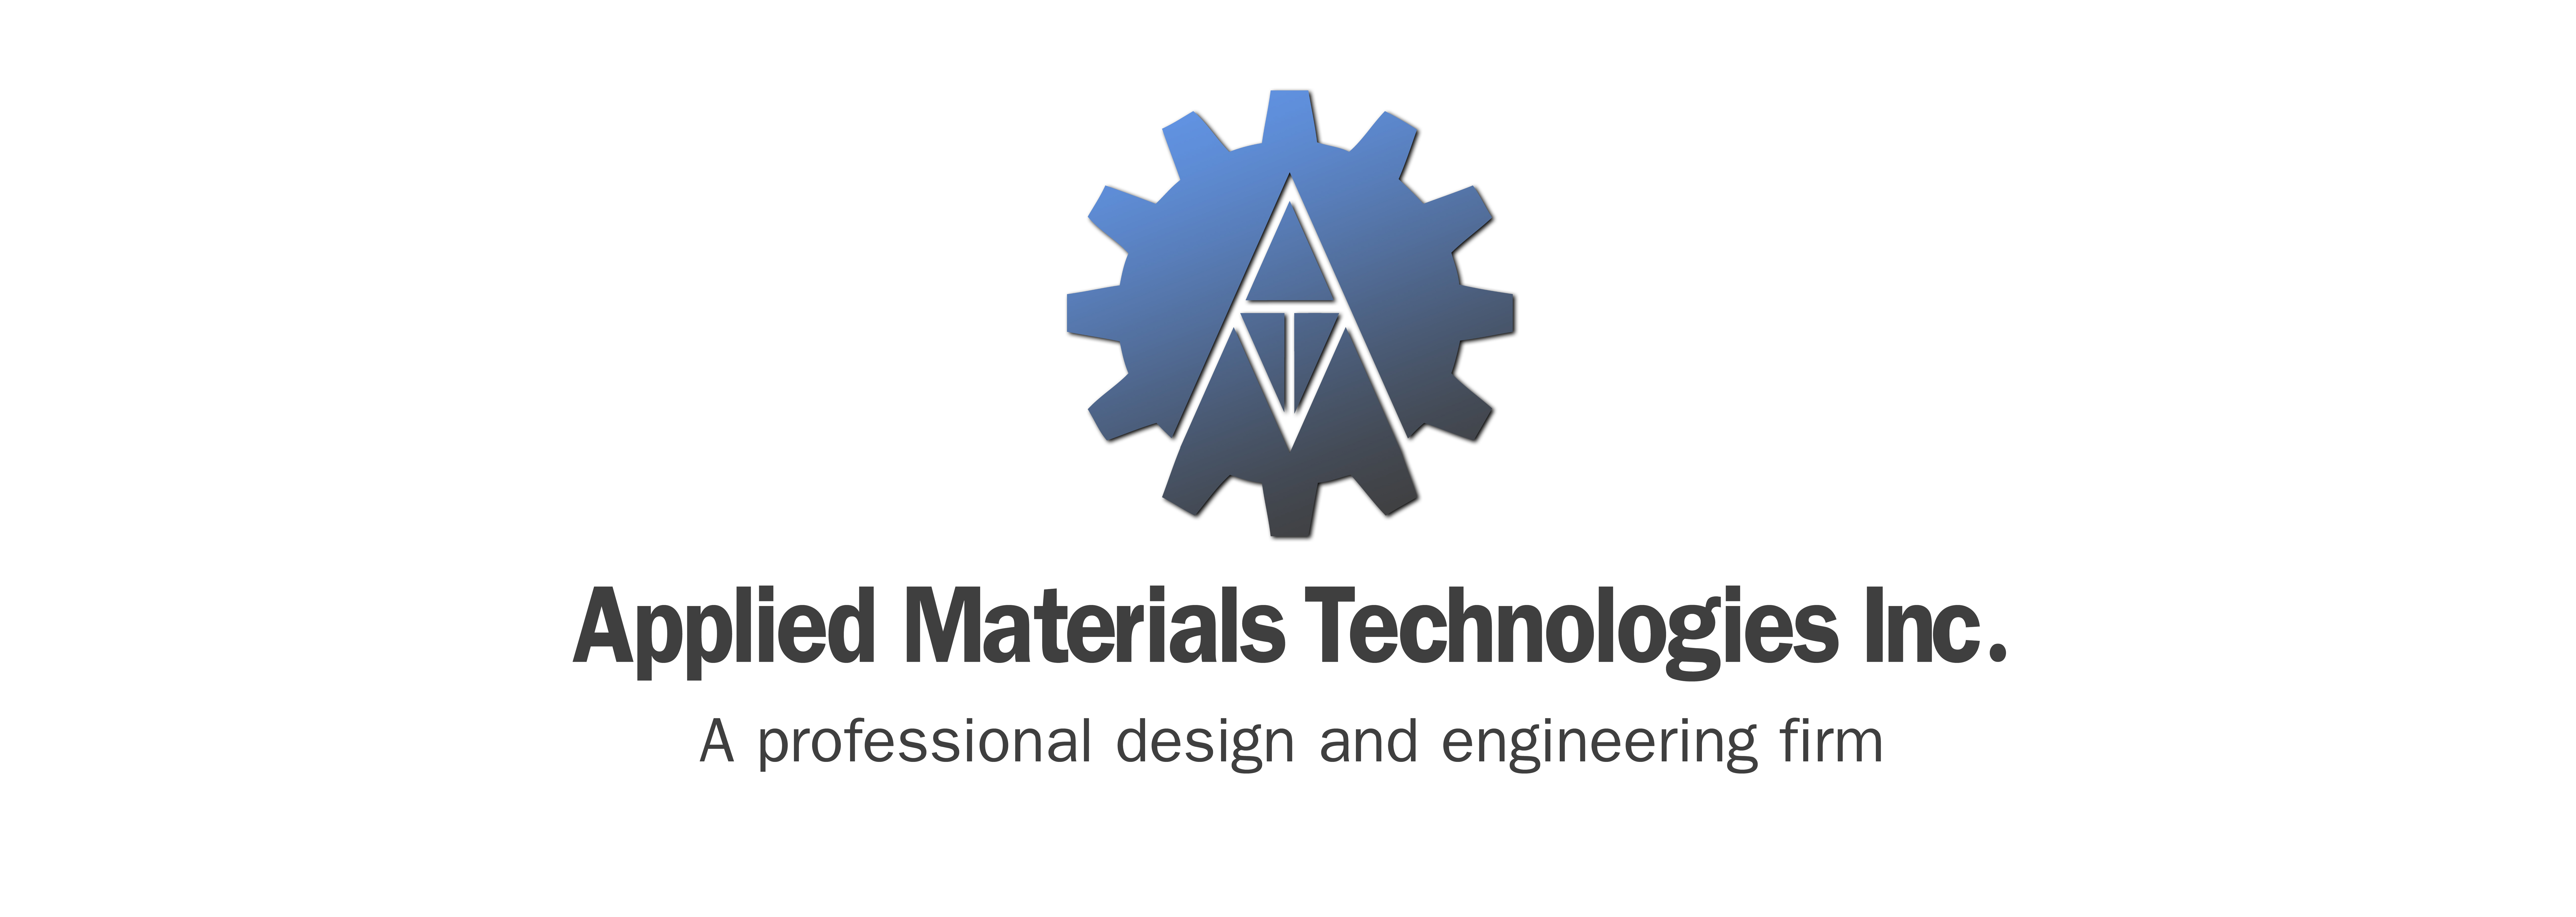 Applied Materials Technologies. Inc. Photo